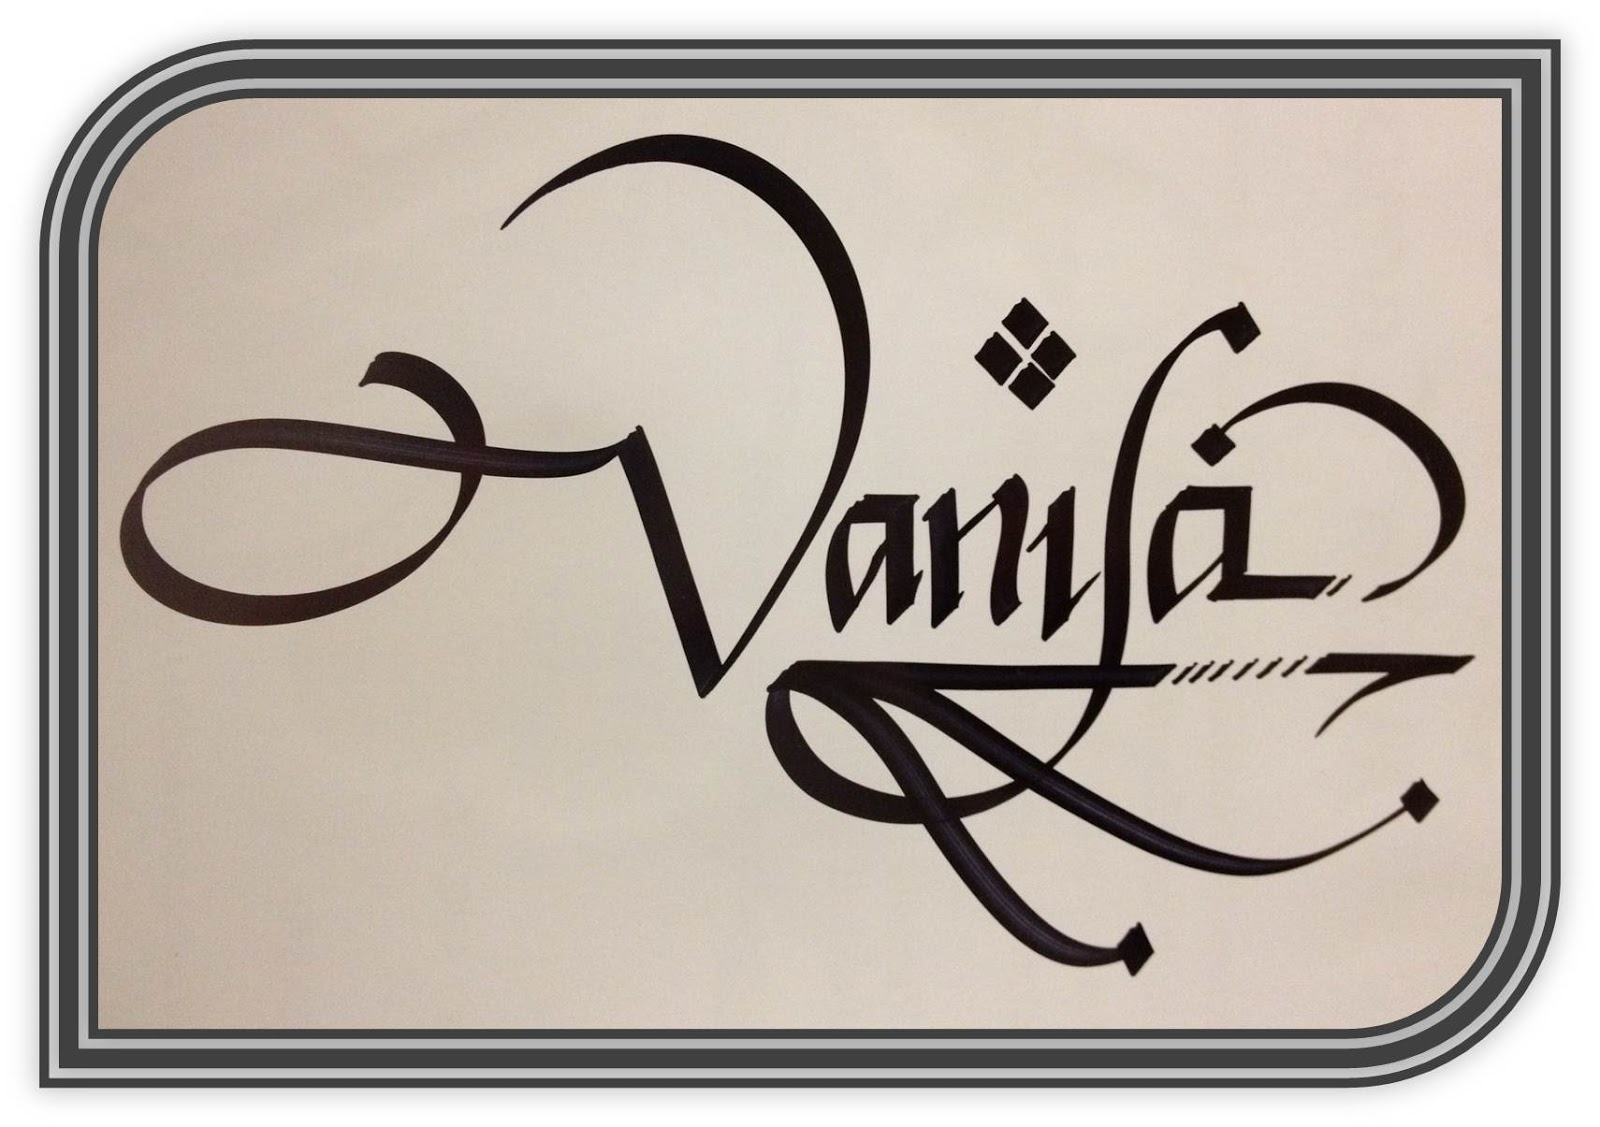 Calligraphy Art Russian Names In Calligraphy Vanya